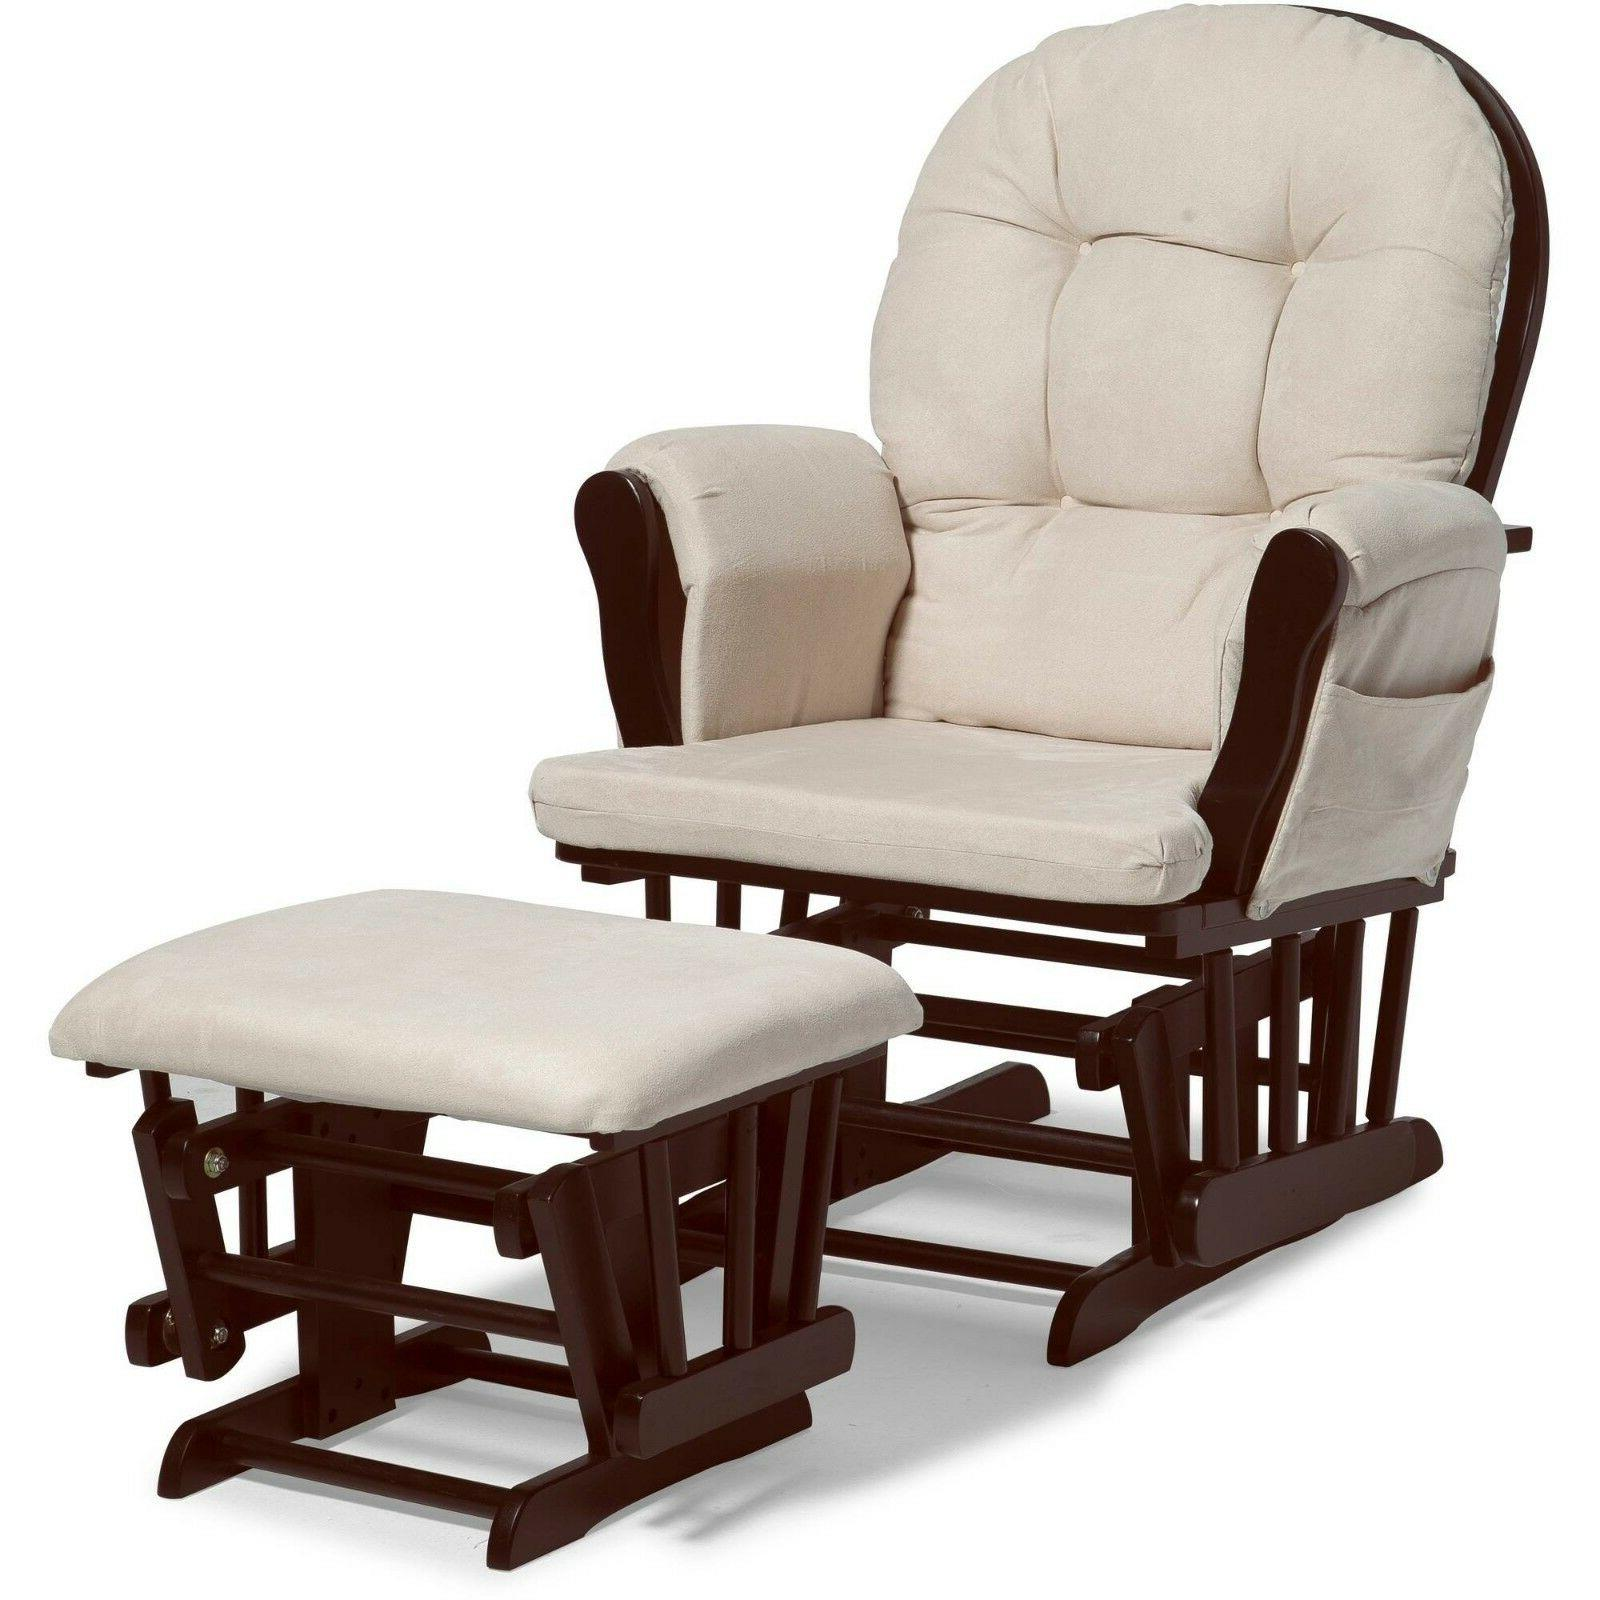 Image of: Nursery Gliders Rocking Chair Rocking Chair Org